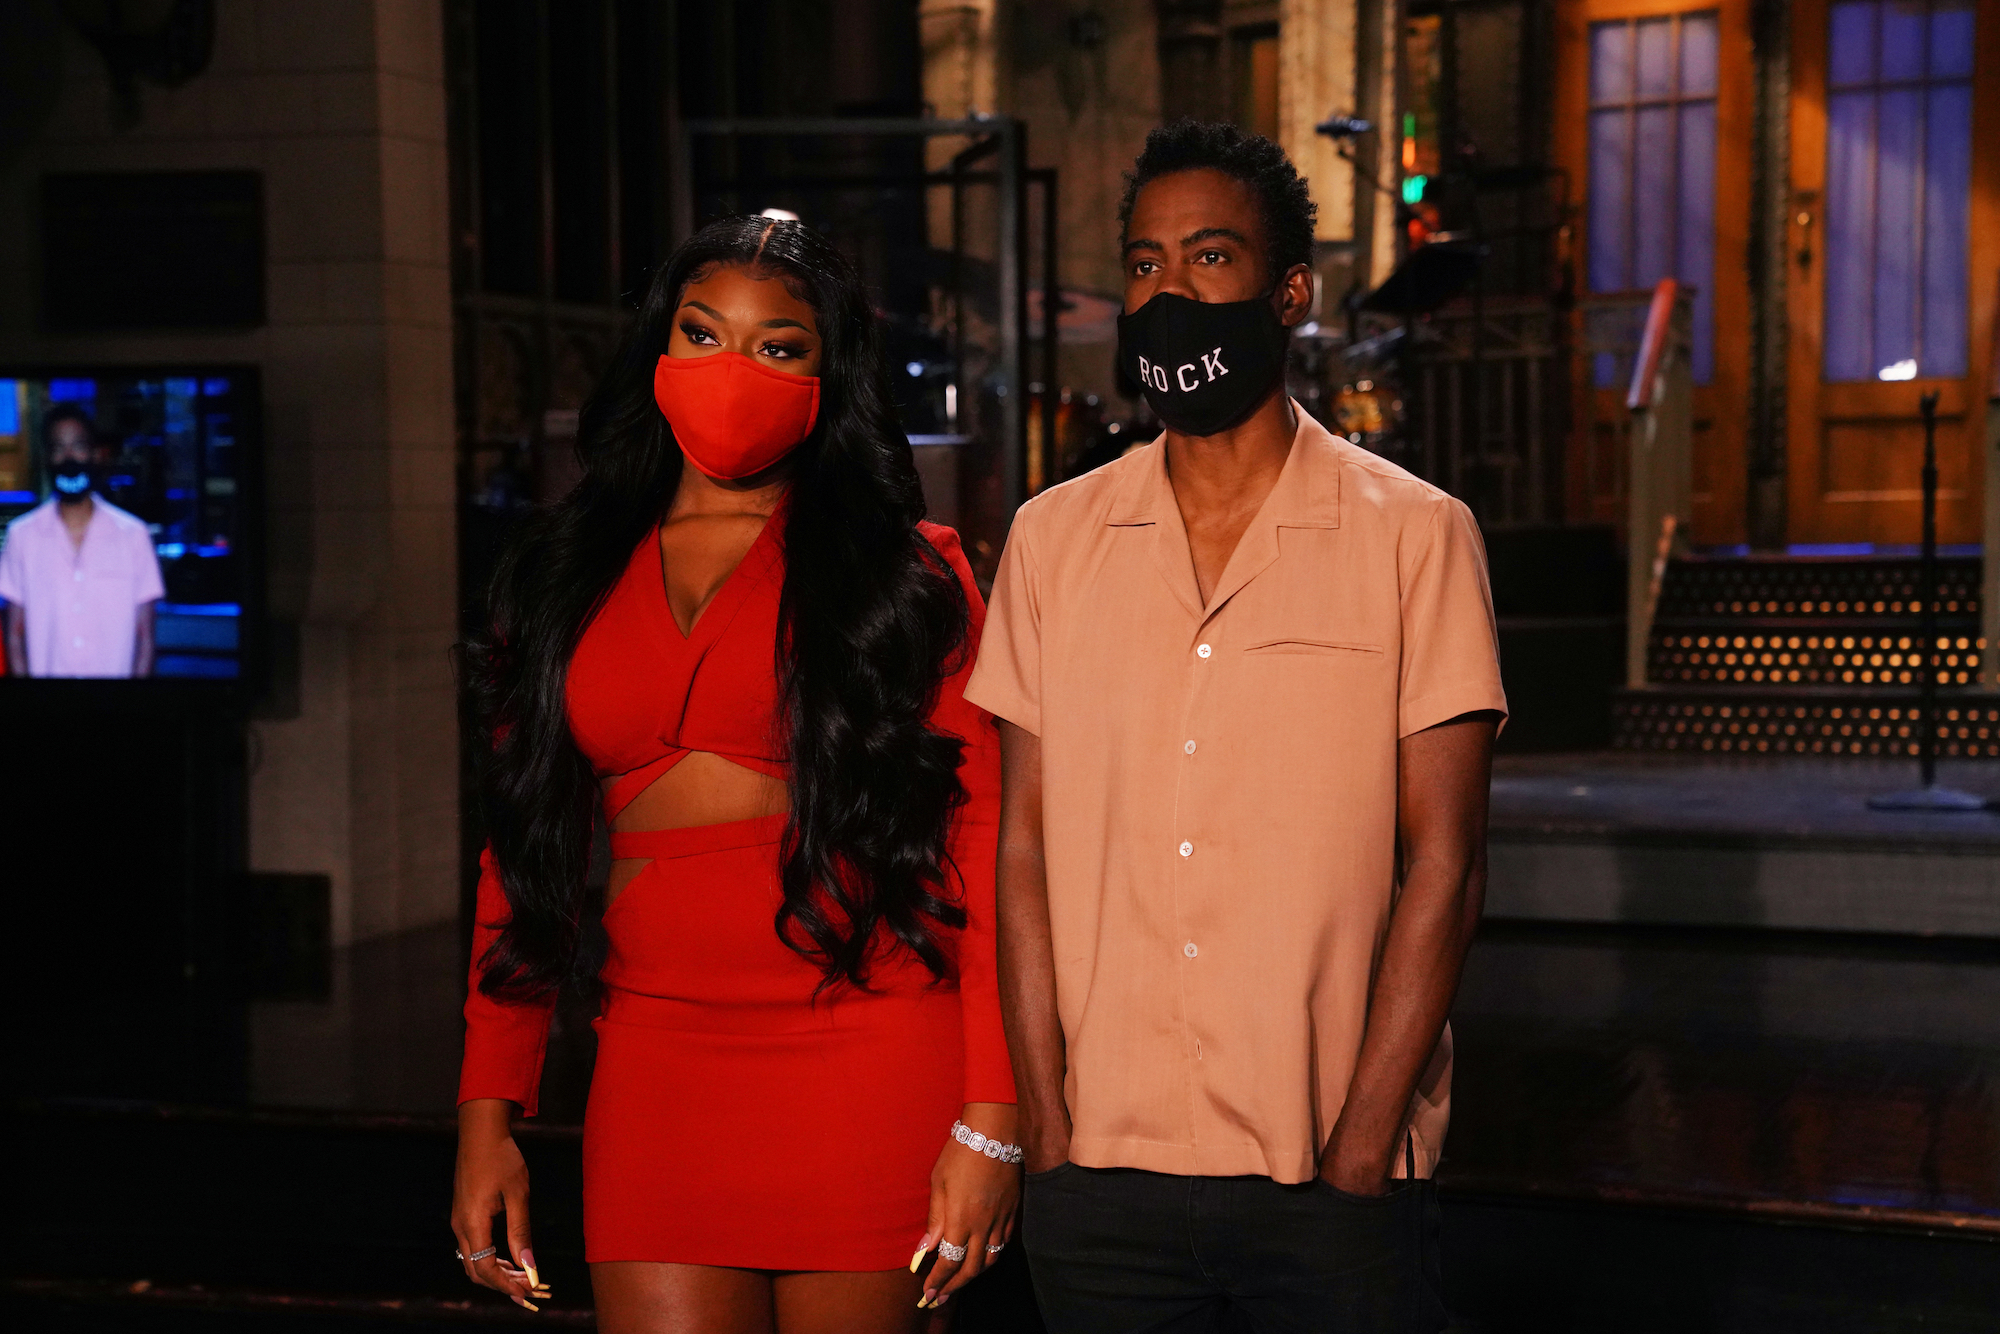 Megan Thee Stallion and Chris Rock during a promo for Oct. 3's 'Saturday Night Live' episode.